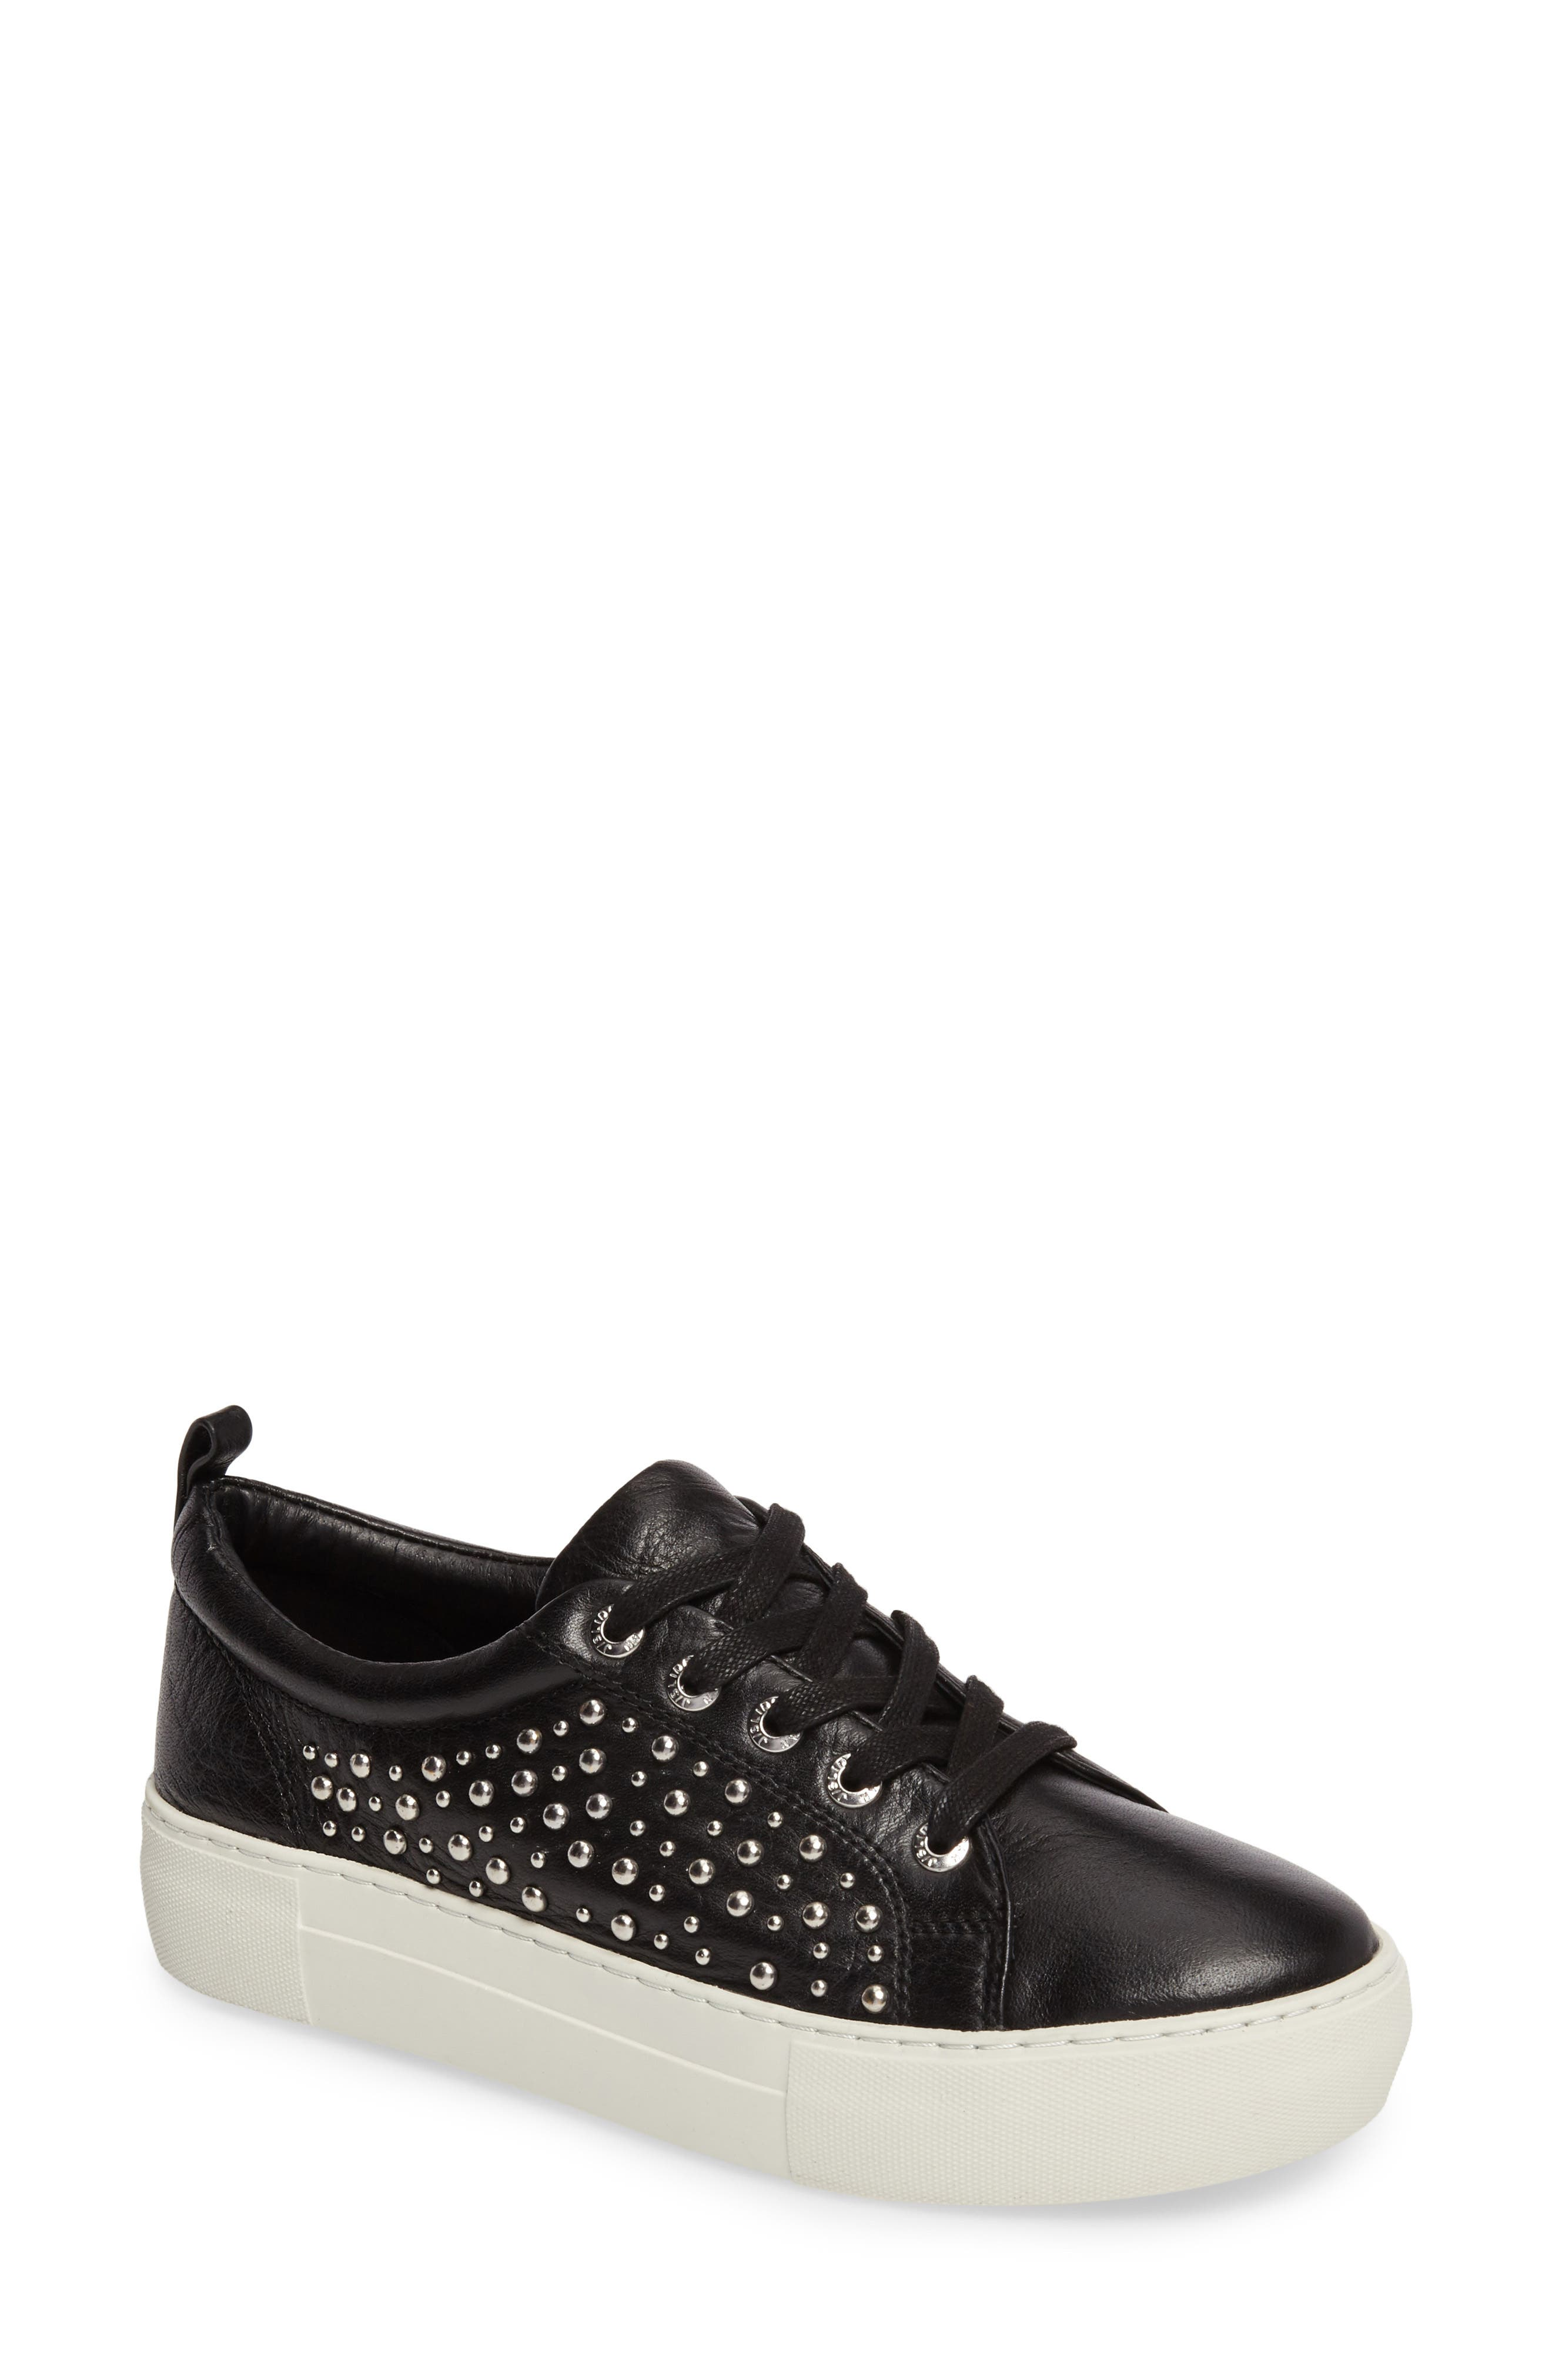 Ambrosia Studded Lace-Up Sneaker,                             Main thumbnail 1, color,                             Black Leather